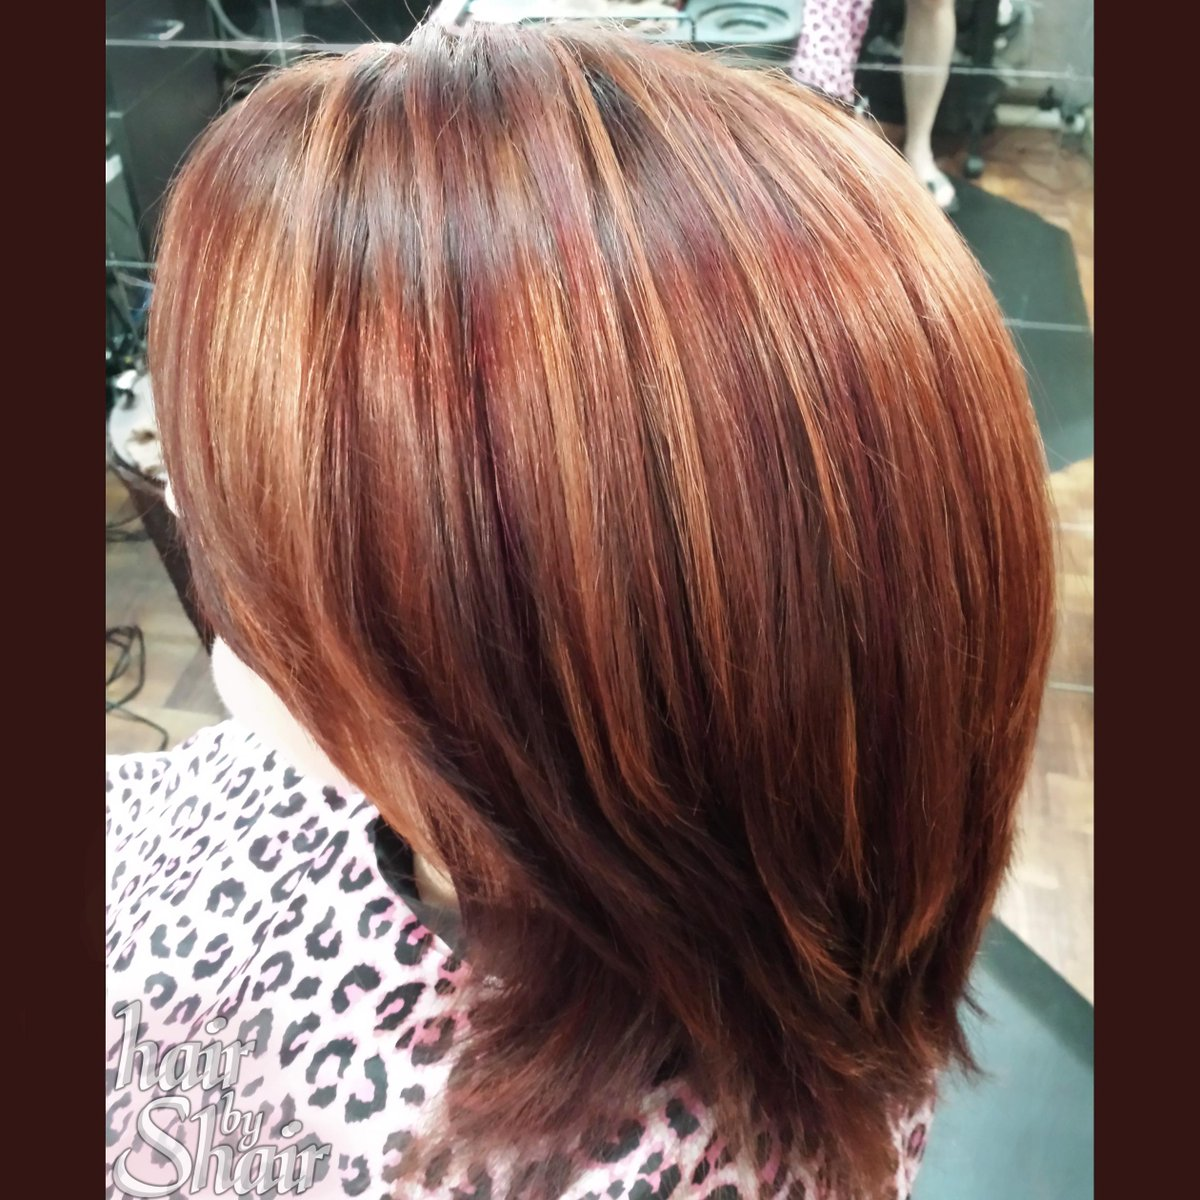 Hair By Shair On Twitter Redhair Highlights Lowlights